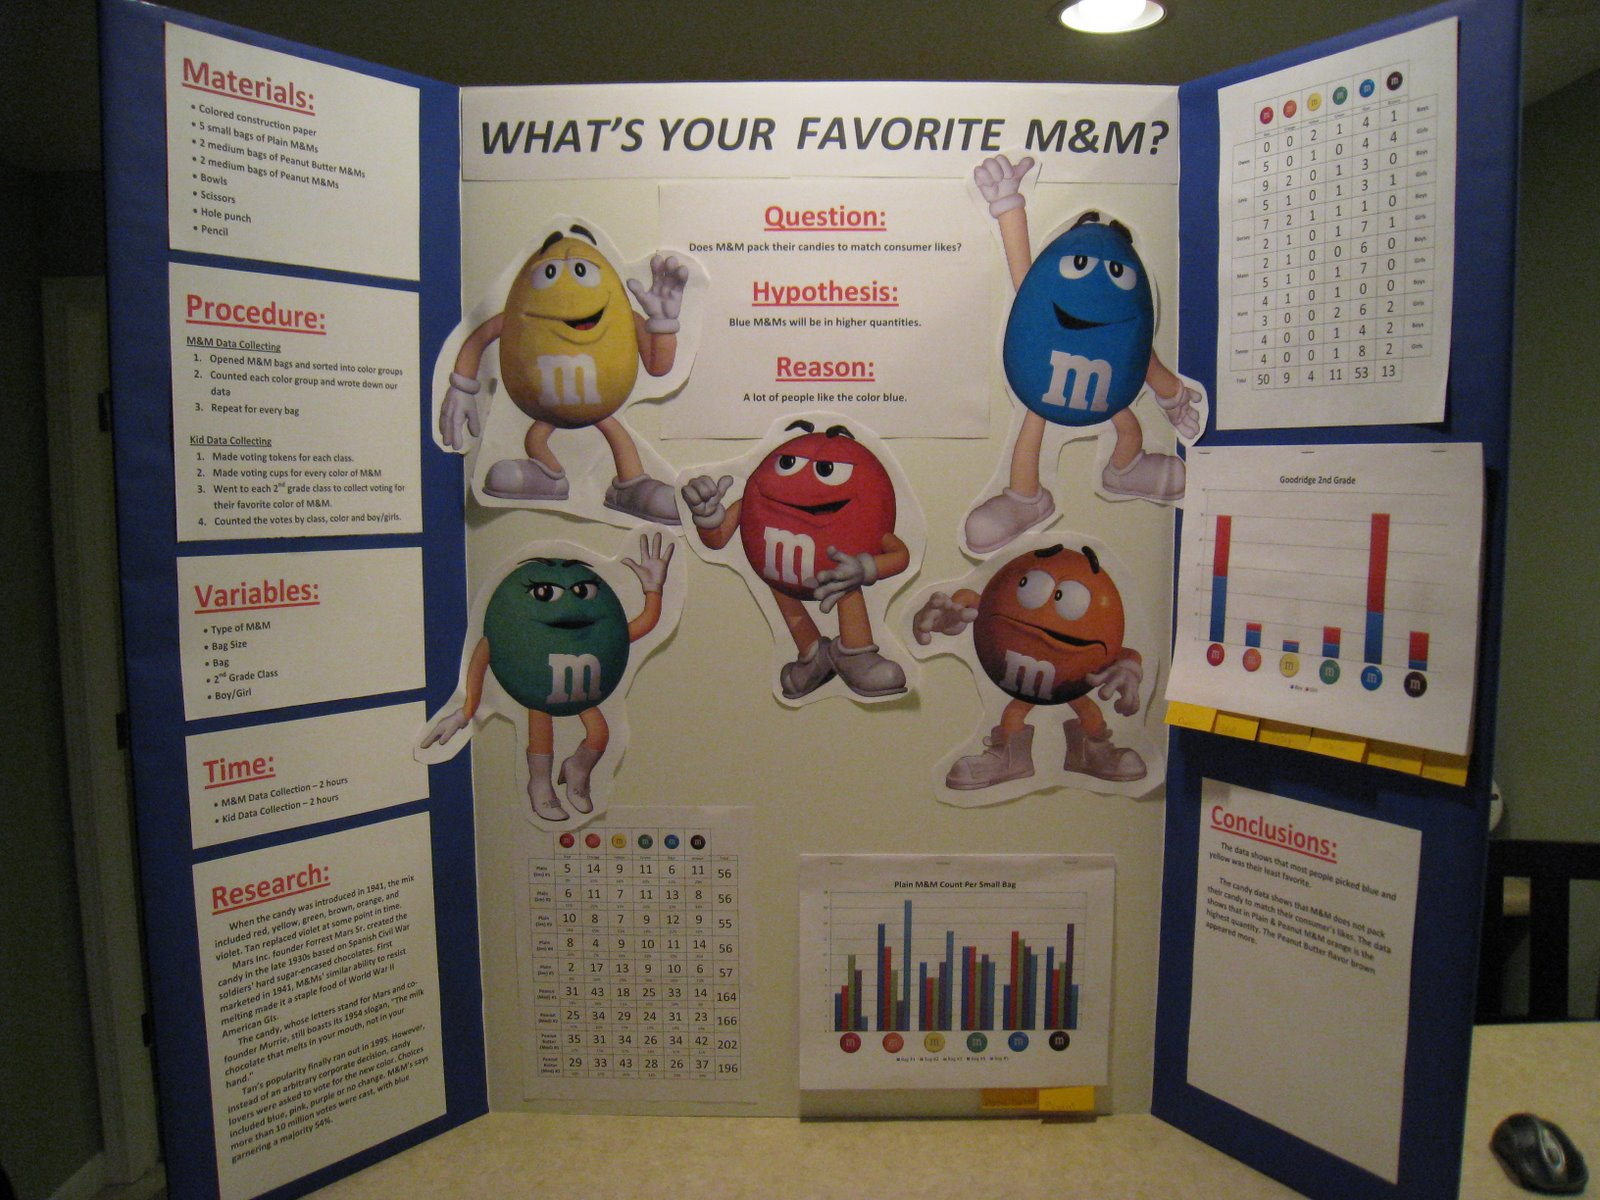 easy science fair projects Science fair projects ideas for high school, middle school students 5th grade, 6th grade, 7th grade, 8th grade, 9th grade, 10th grade, 11th grade, 12th grade science.